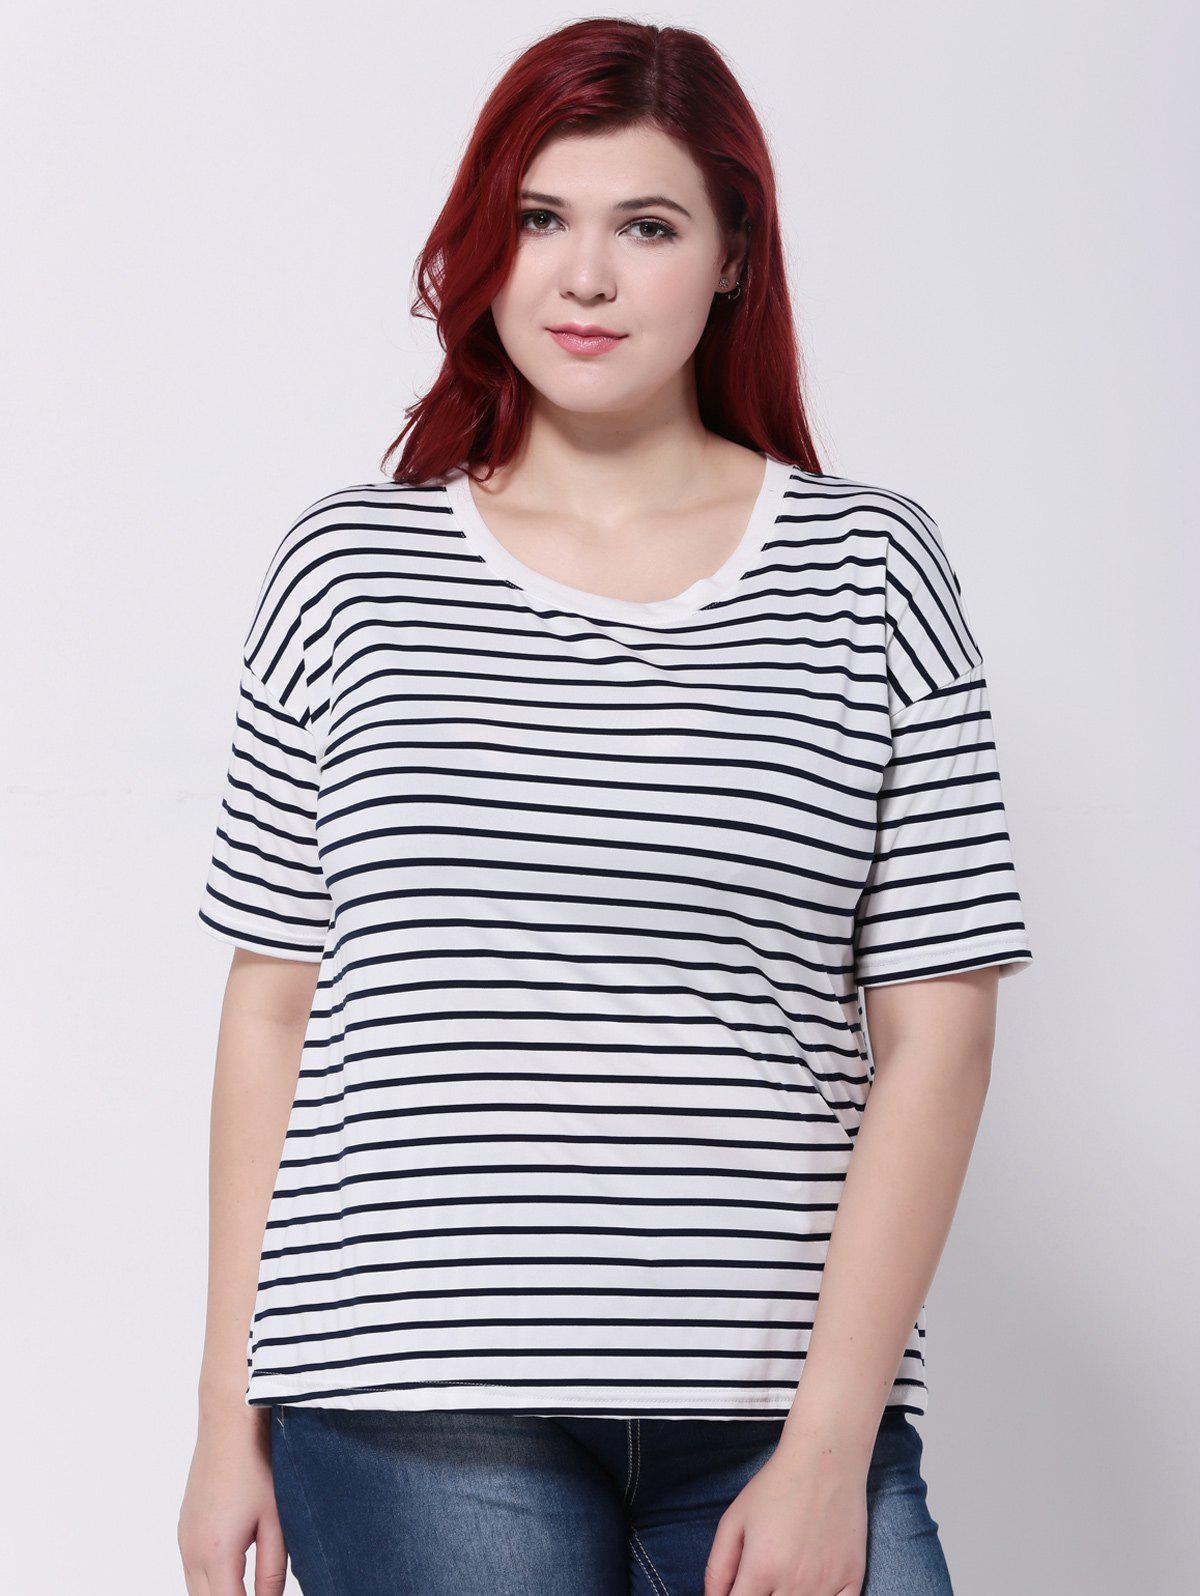 Striped Short Sleeves T-ShirtWomen<br><br><br>Size: 3XL<br>Color: WHITE AND BLACK